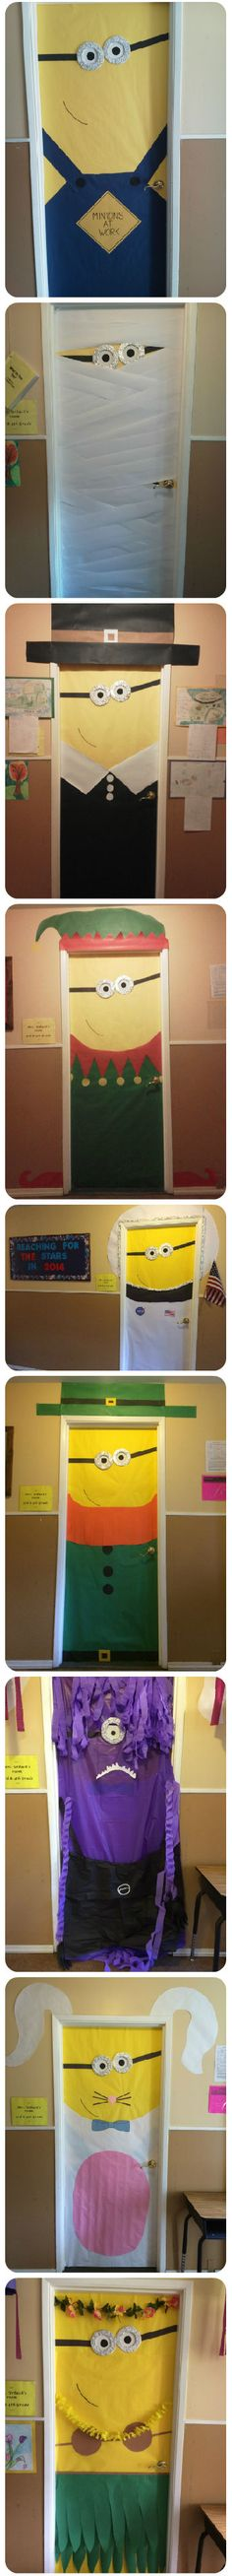 Soooo cute!! Minion through the school year. Sept: minion Oct: mummy Nov: pilgrim Dec: elf Jan: astronaut March: leprechaun April Fool's Day: crazy purple minion! April: Easter bunny May: aloha minion